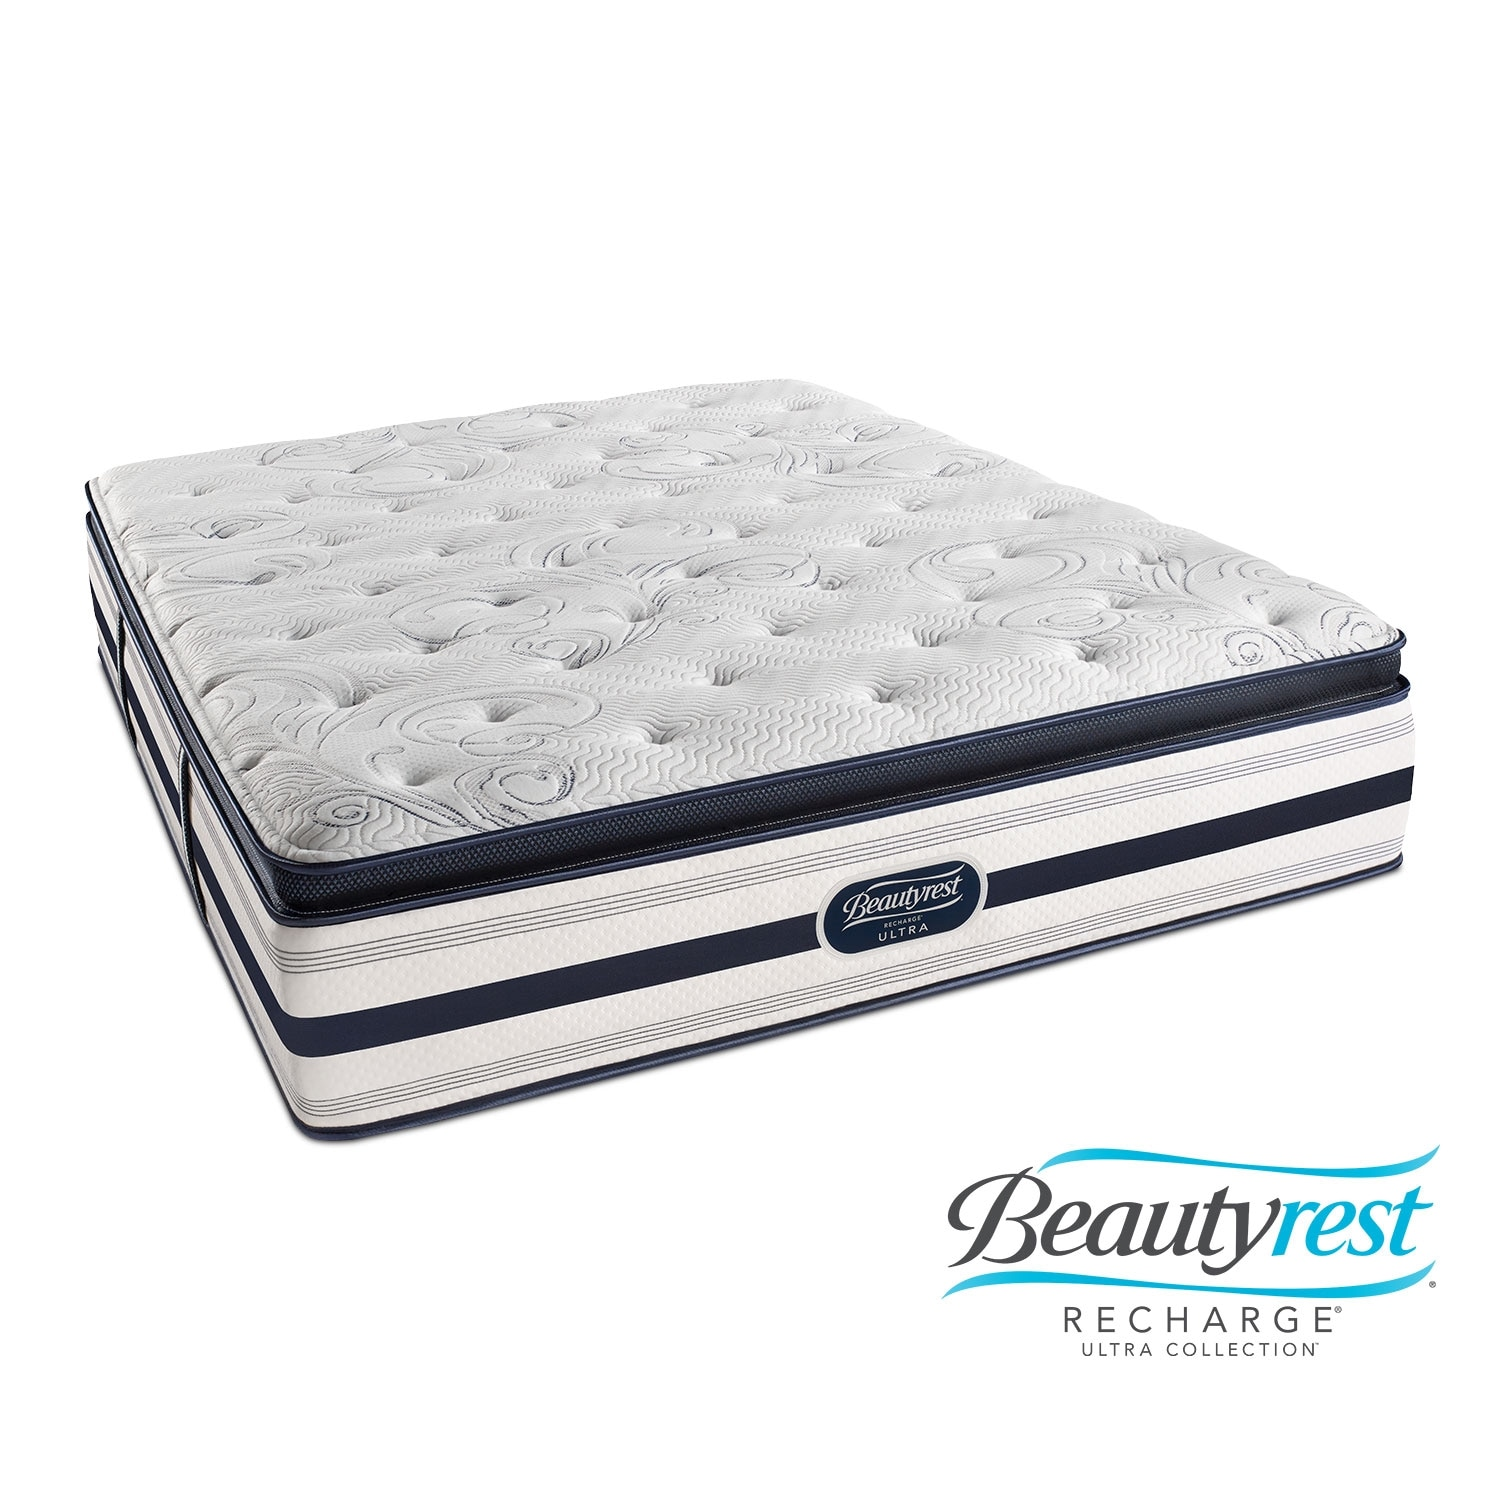 Mattresses and Bedding - Cerise Luxury Firm PT Queen Mattress